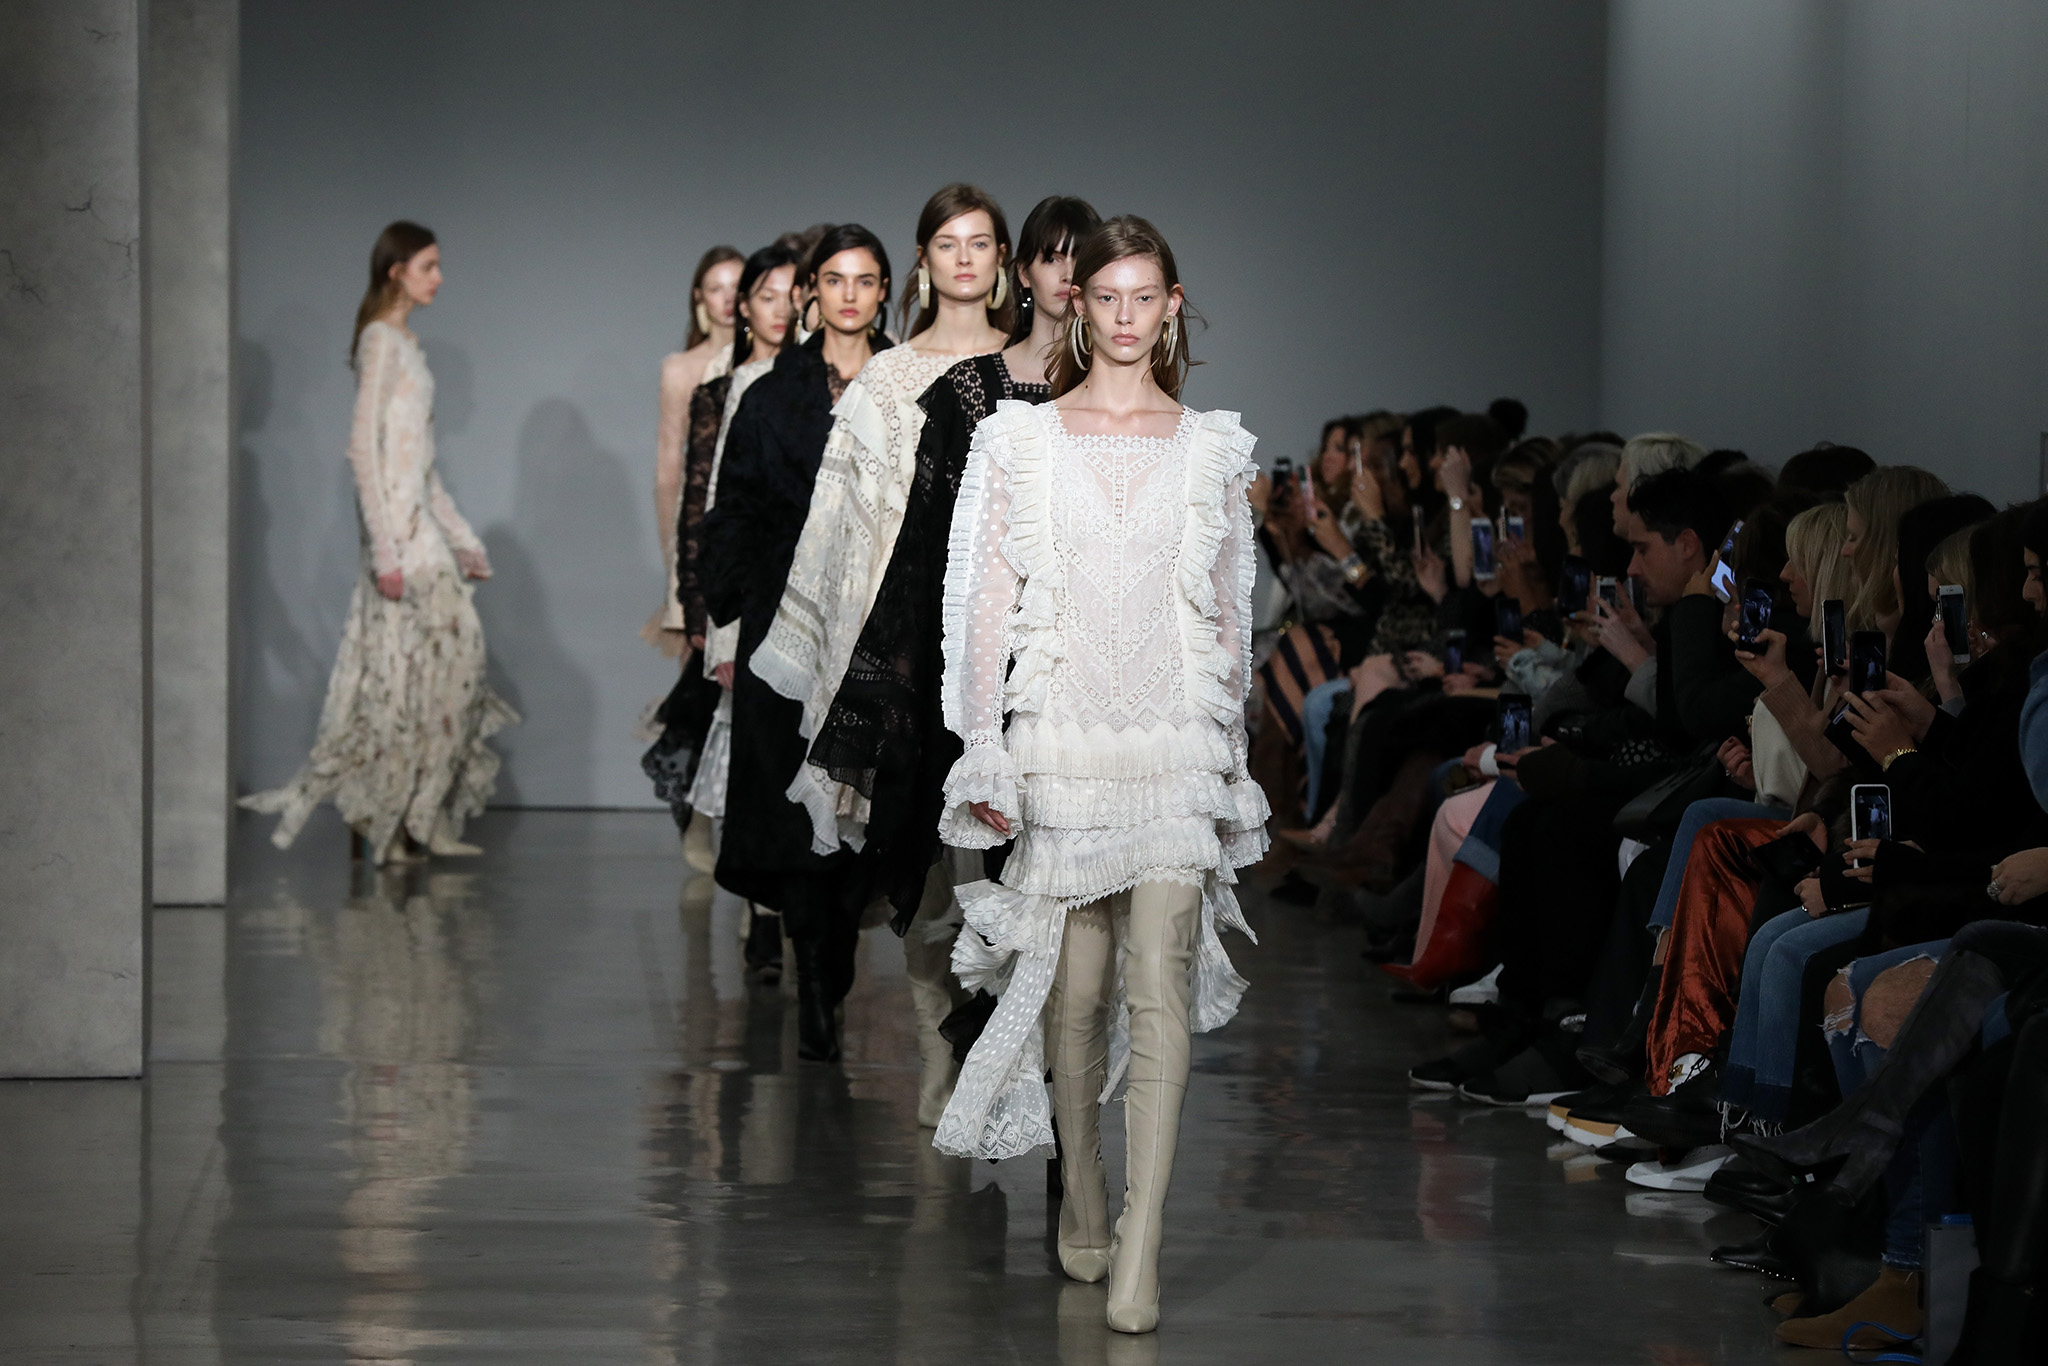 Internships in the fashion industry 25